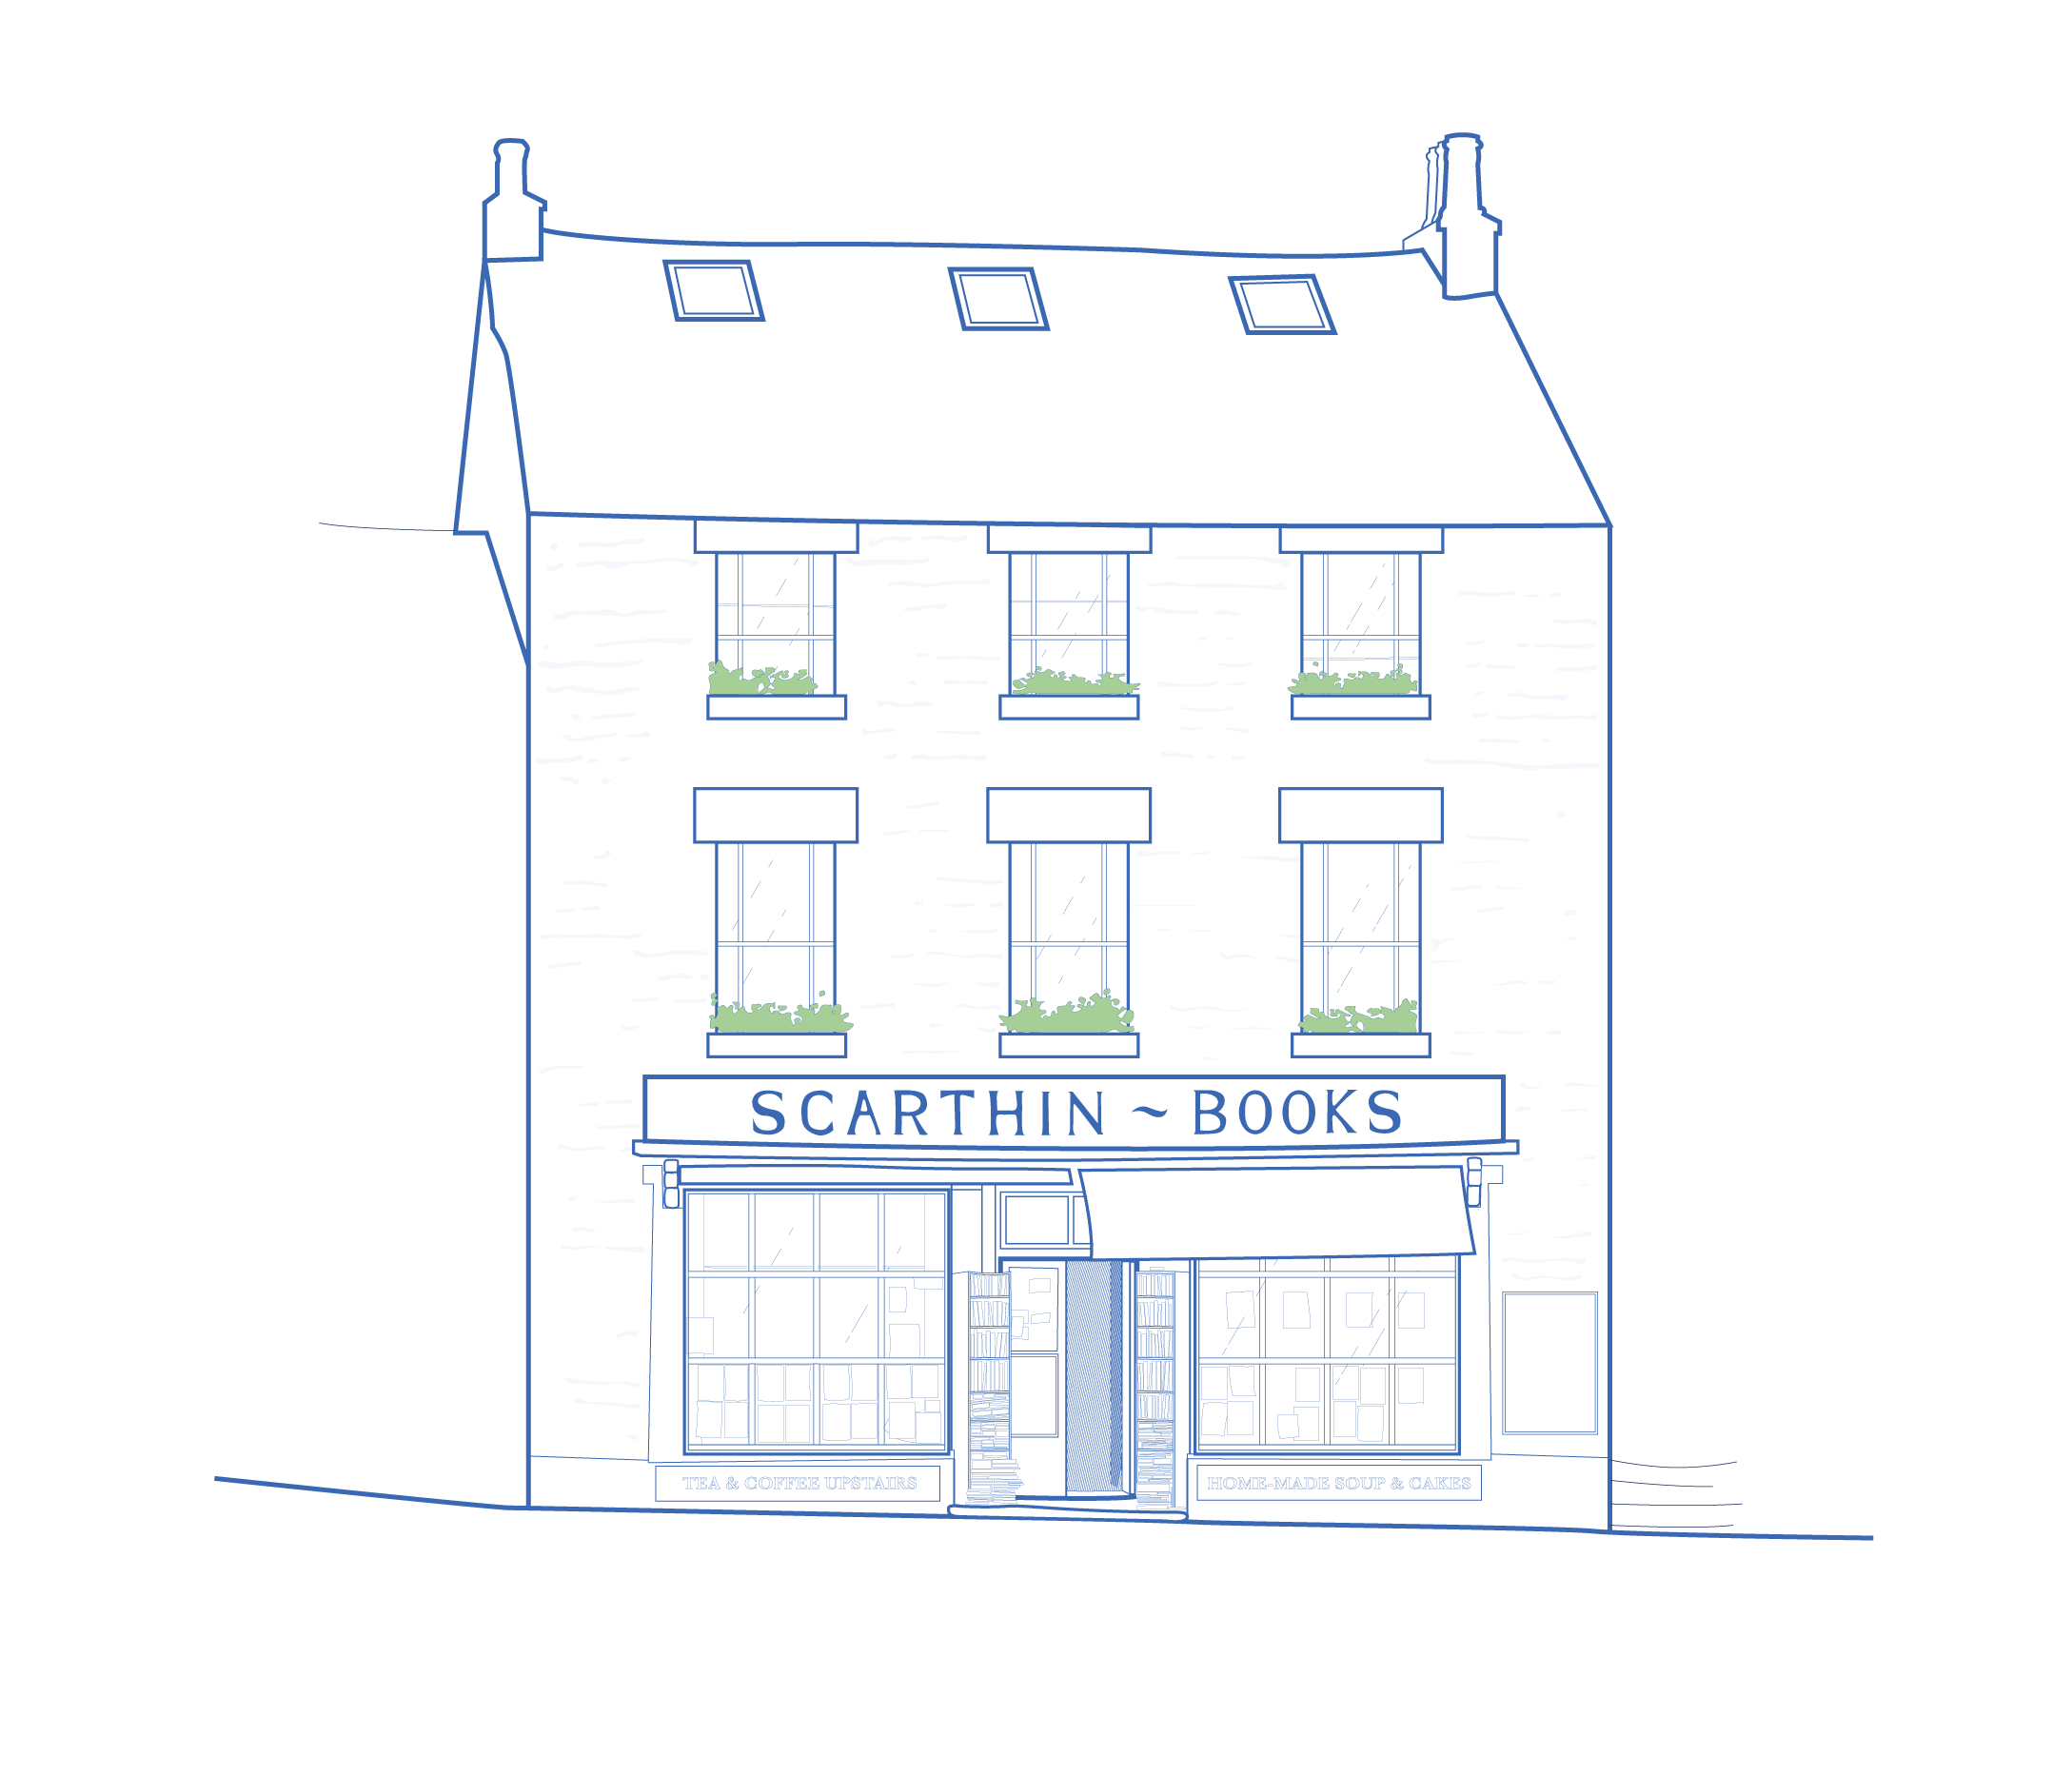 A blue and white architectural illustration of Scarthin Books house in Cromford, Derbyshire.